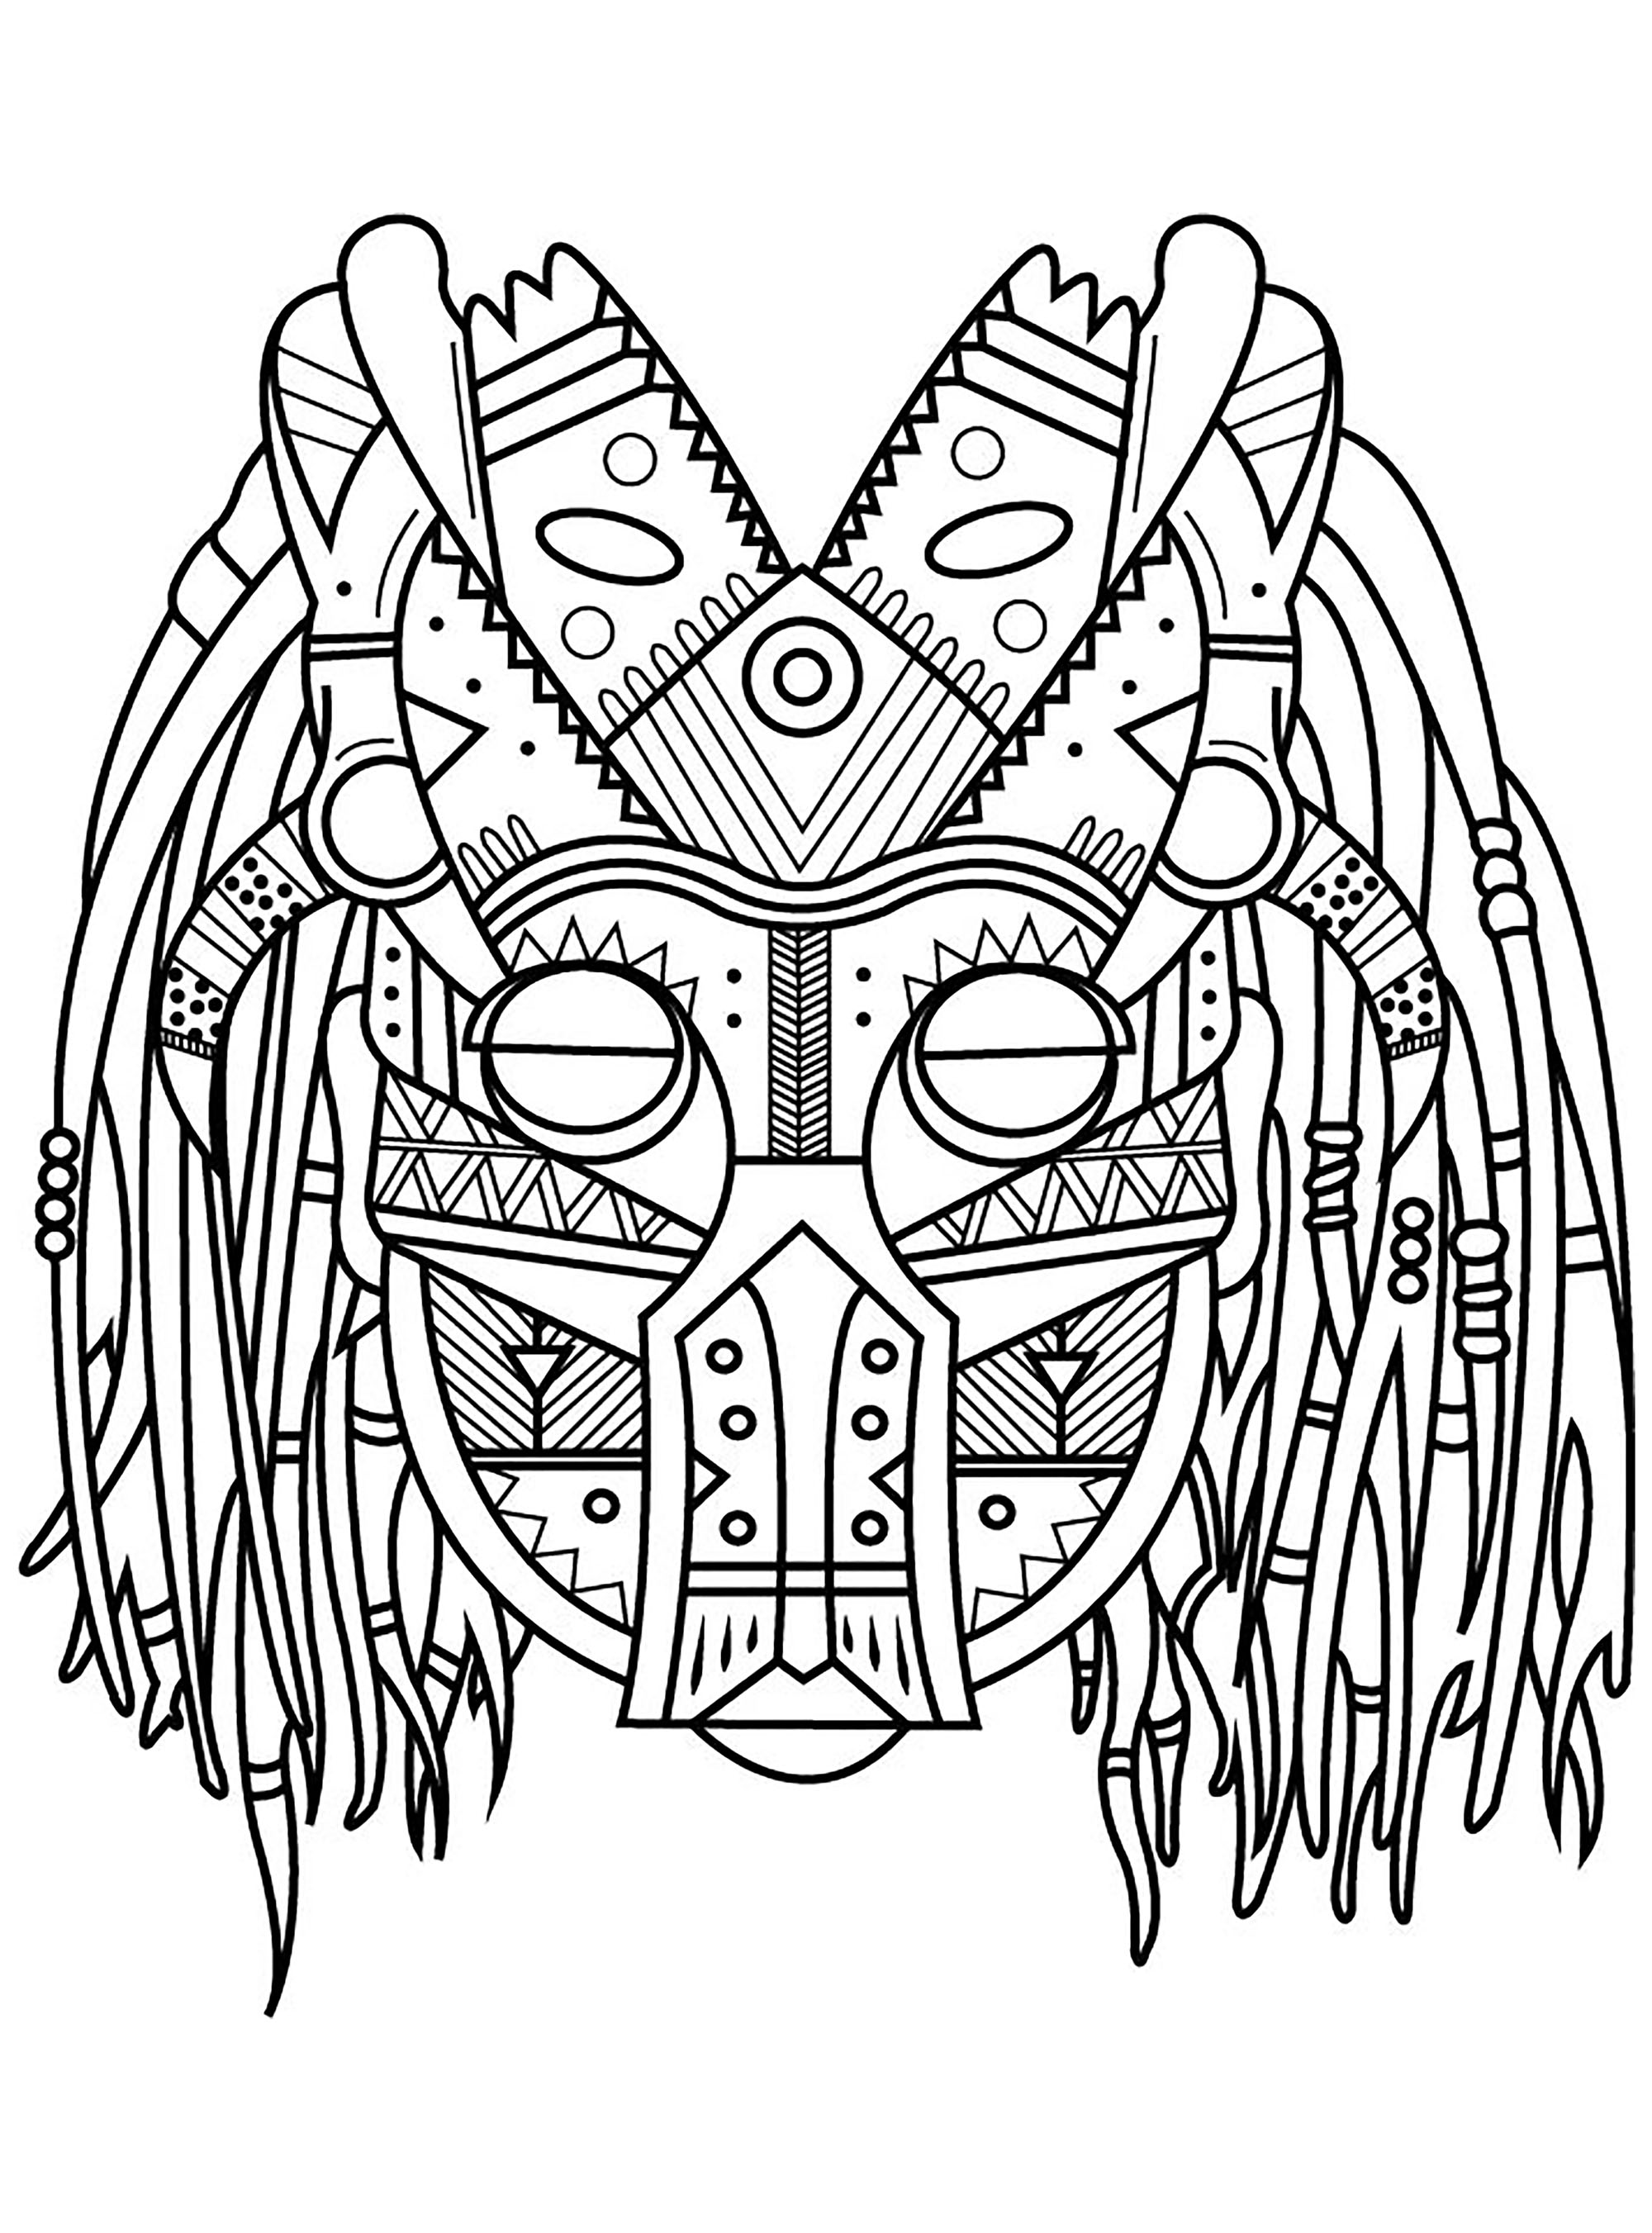 coloring art pages the arts coloring pages and printables classroom doodles pages art coloring